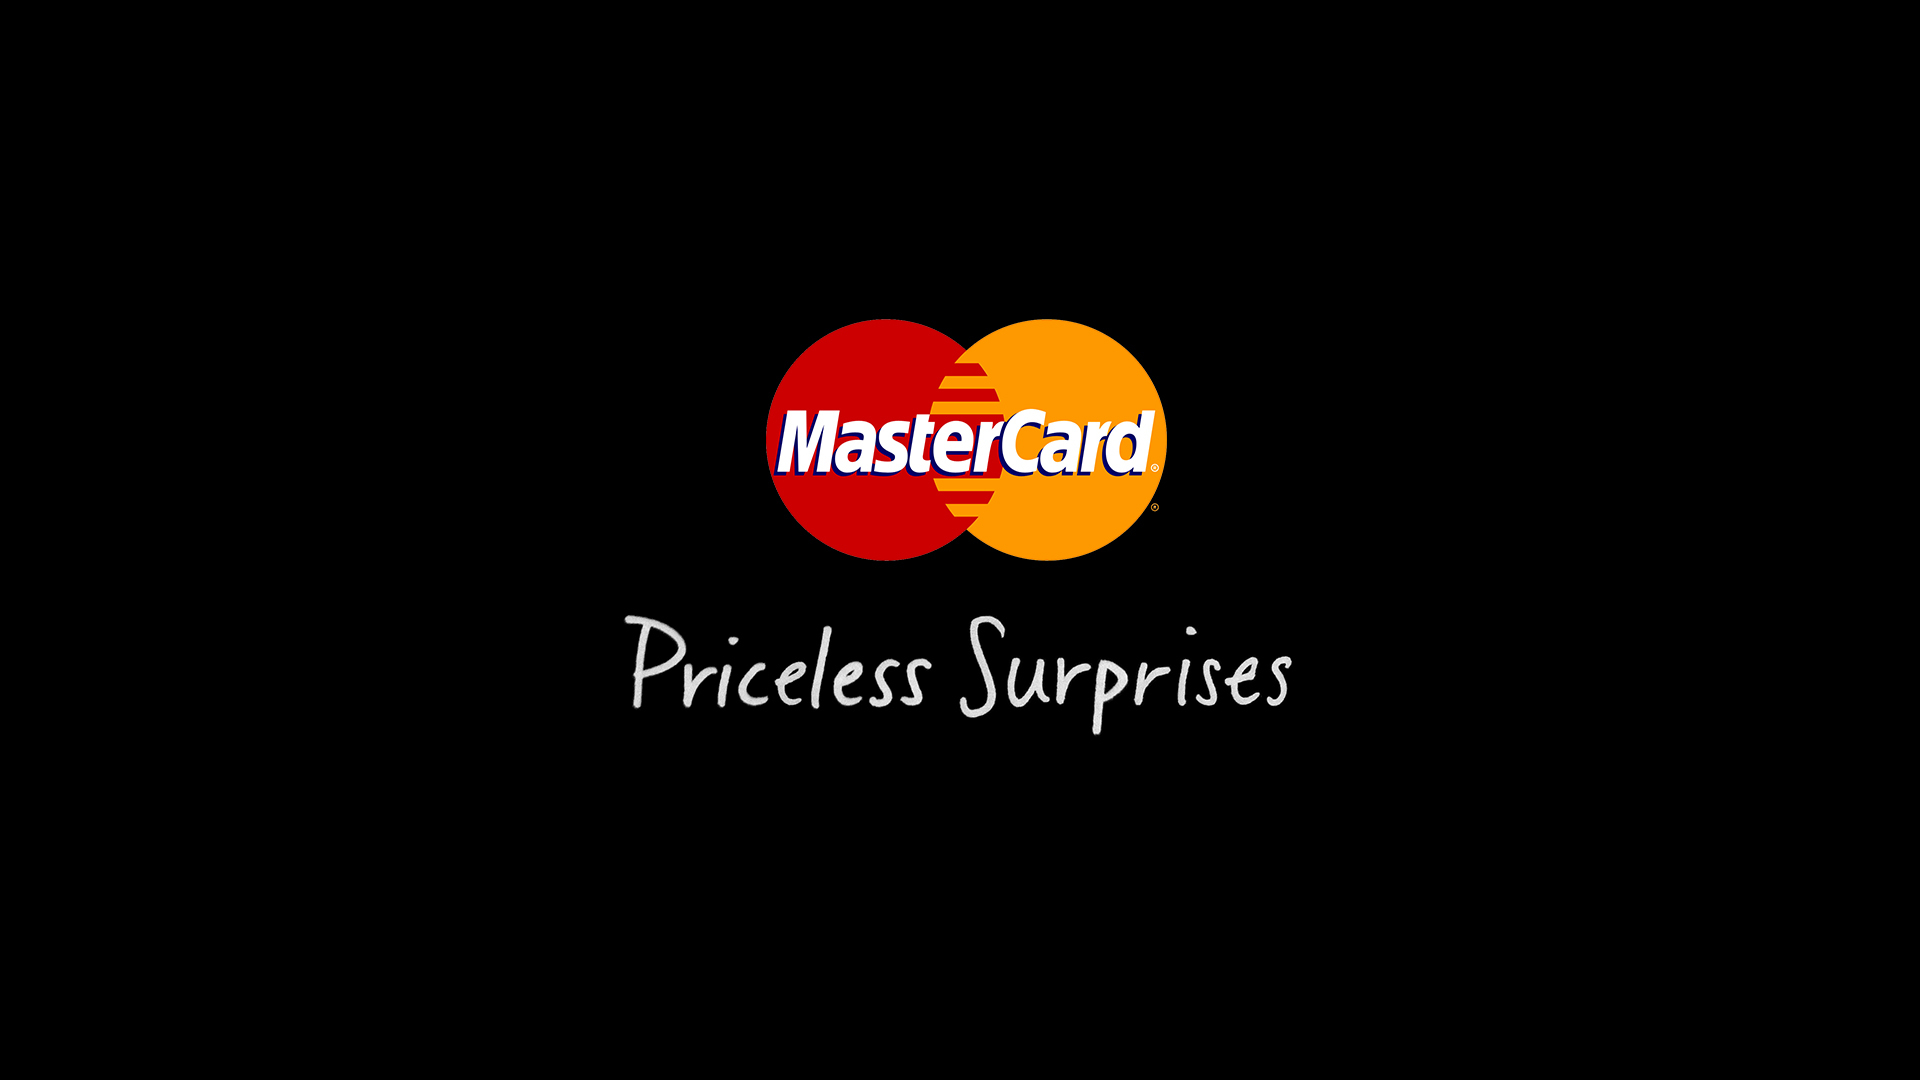 011514-MasterCard-Priceless-Surprises-Stacked-1